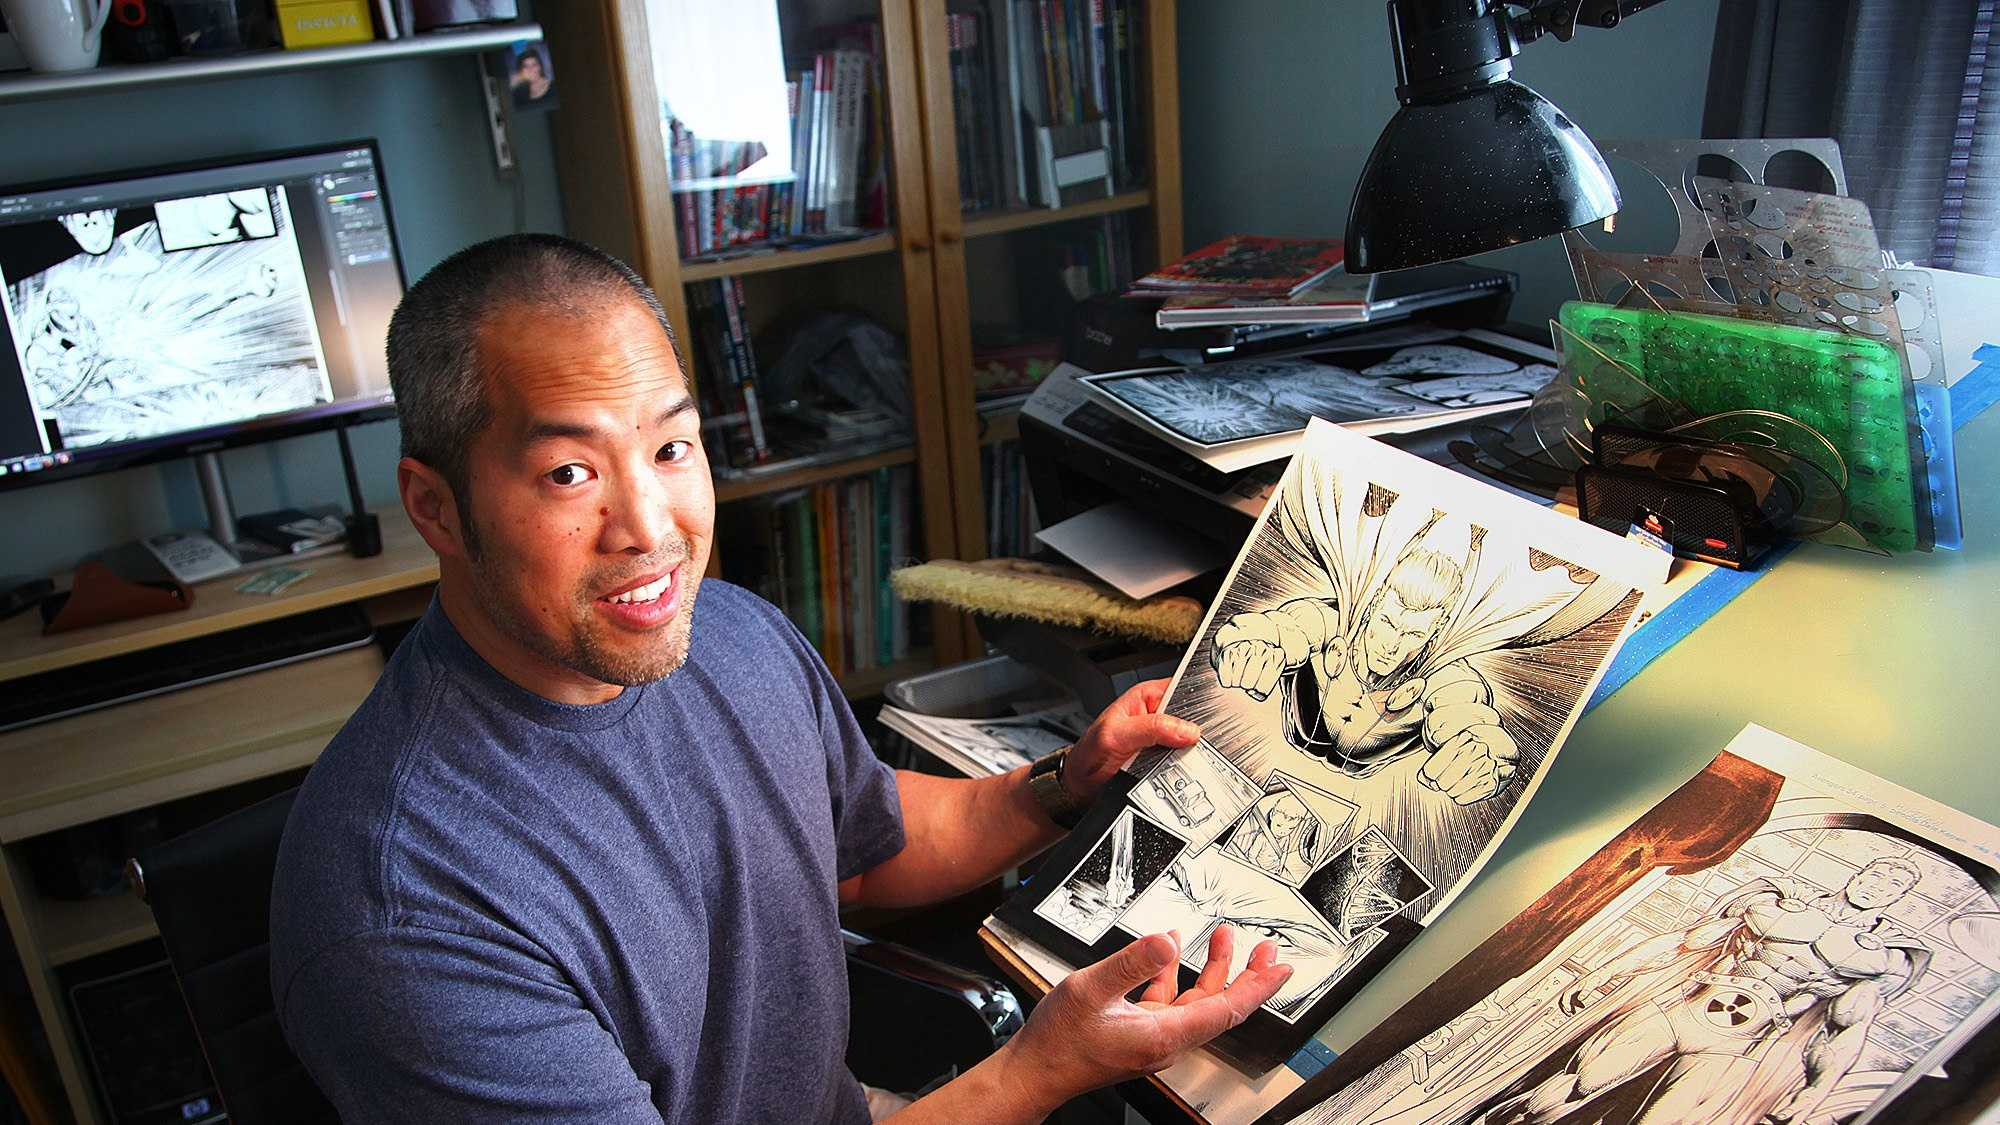 Norman Lee, a Weymouth comic book artist, in 2014.